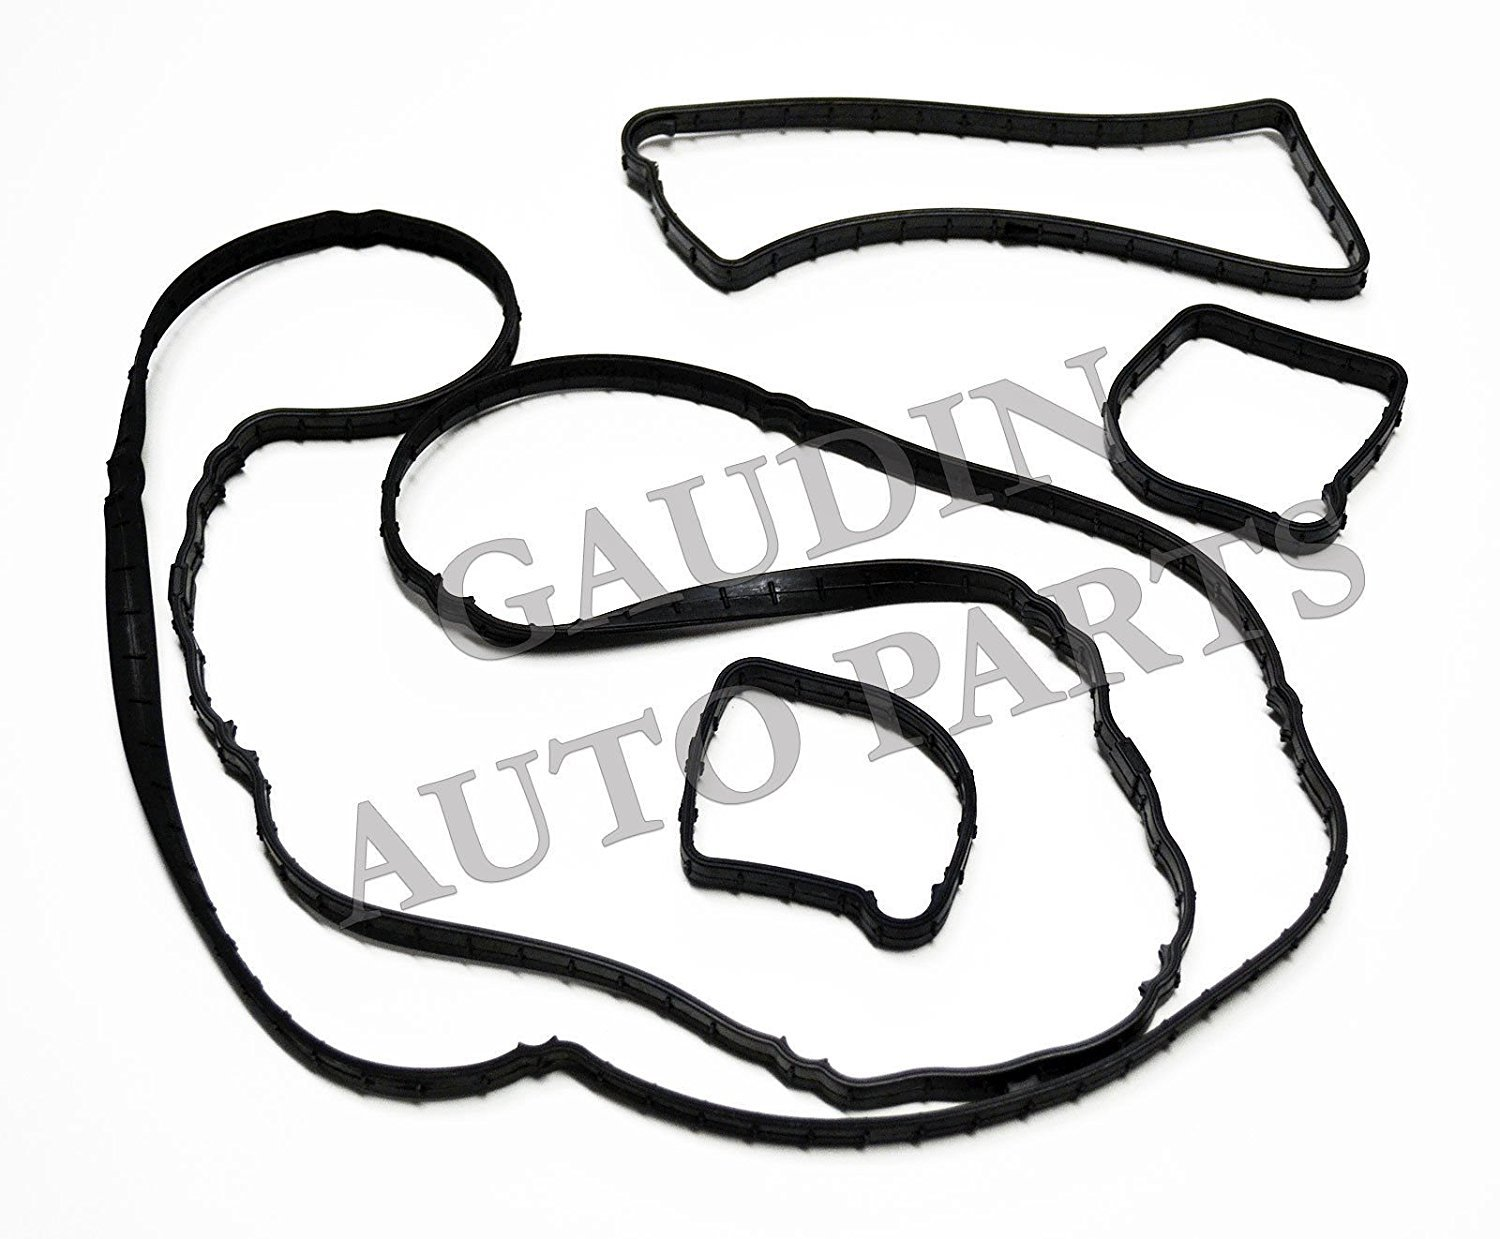 Ford 1S7Z-6584-BA, Engine Valve Cover Gasket by Ford